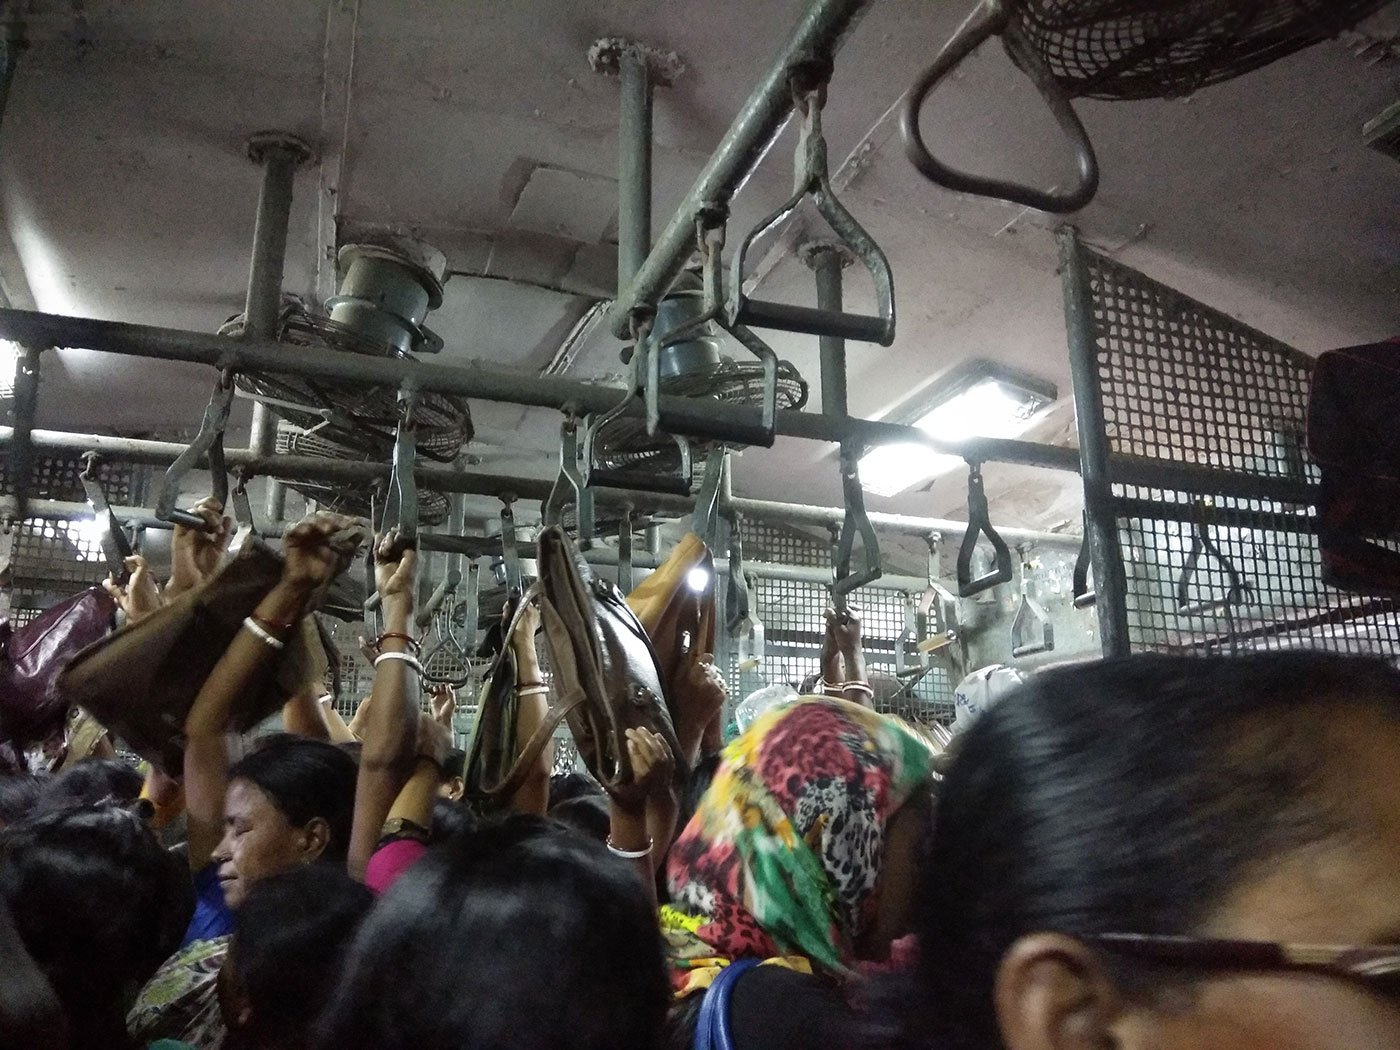 Breshpati Sardar and other women workers on a crowded train from Sealdah to Canning, via Jadavpur